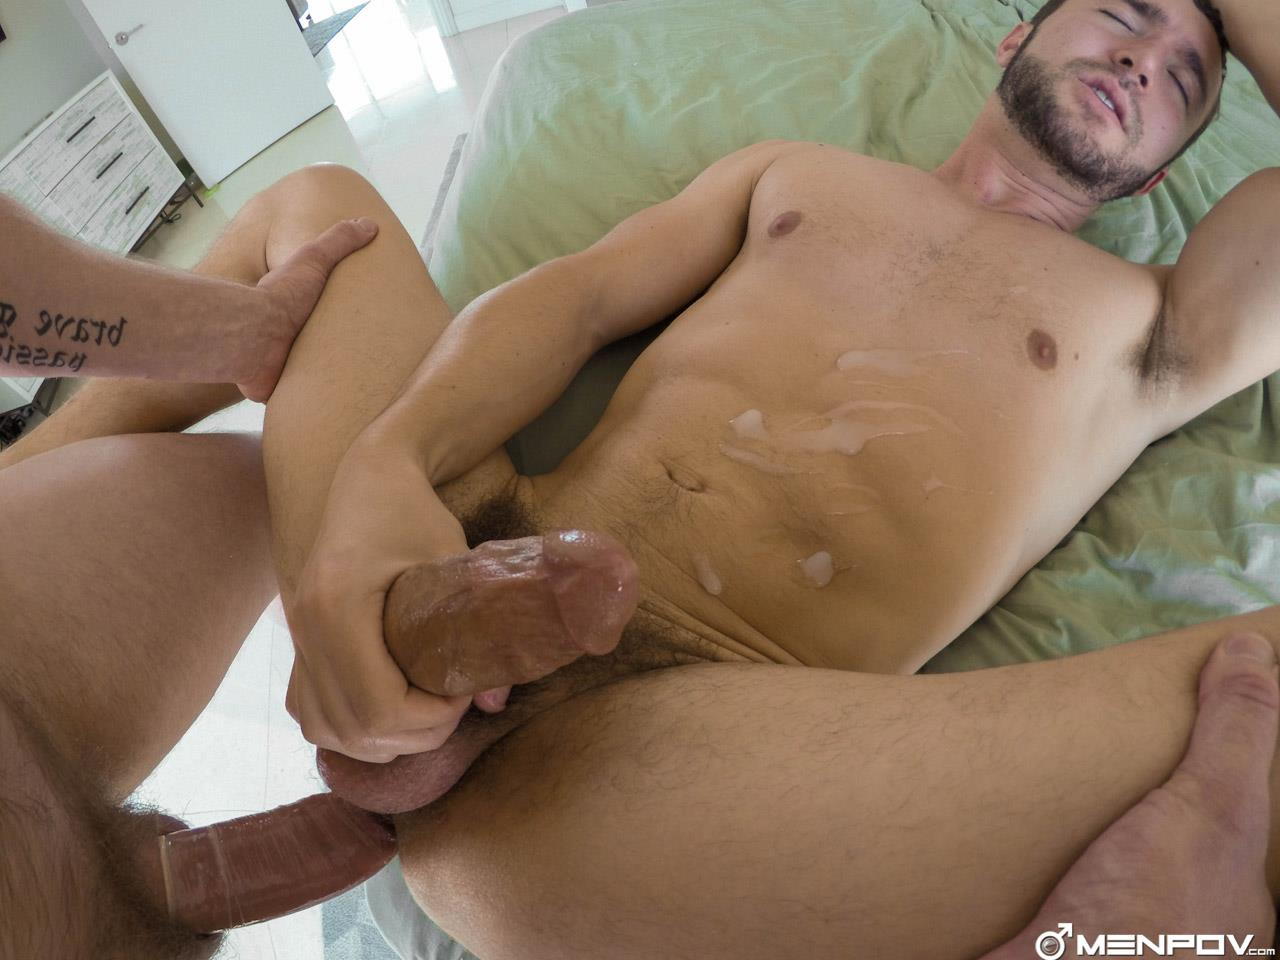 MenPOV Colt Rivers and Adam Herst Daddy Fucking His Boy Toy With A Thick Cock Amateur Gay Porn 25 Muscular Daddy Fucking His Boy Toy With His Thick Hard Cock